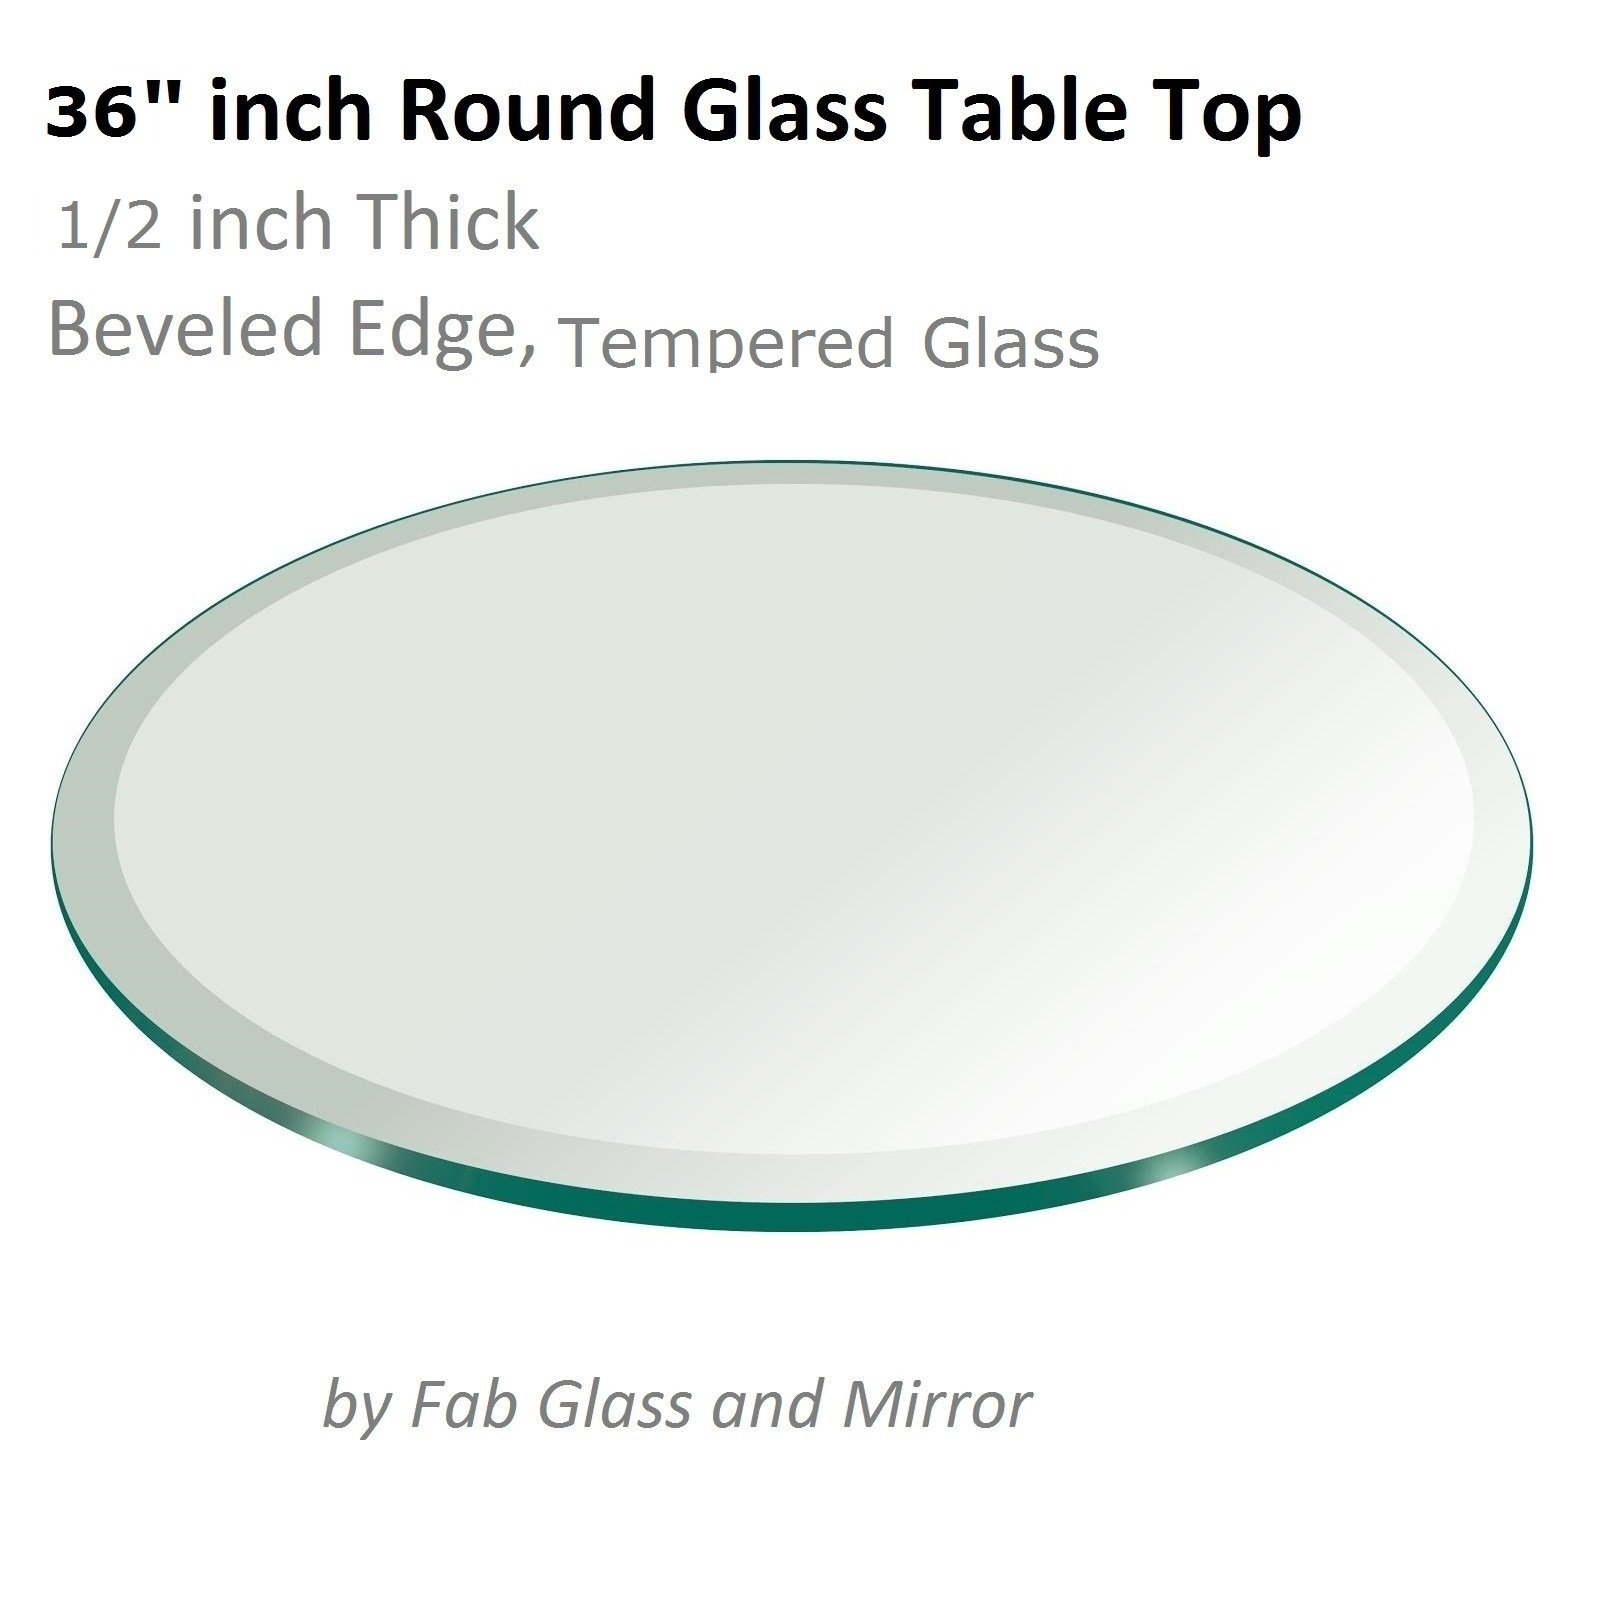 36'' Inch Round Glass Table Top 1/2'' Thick Tempered Beveled Edge by Fab Glass and Mirror